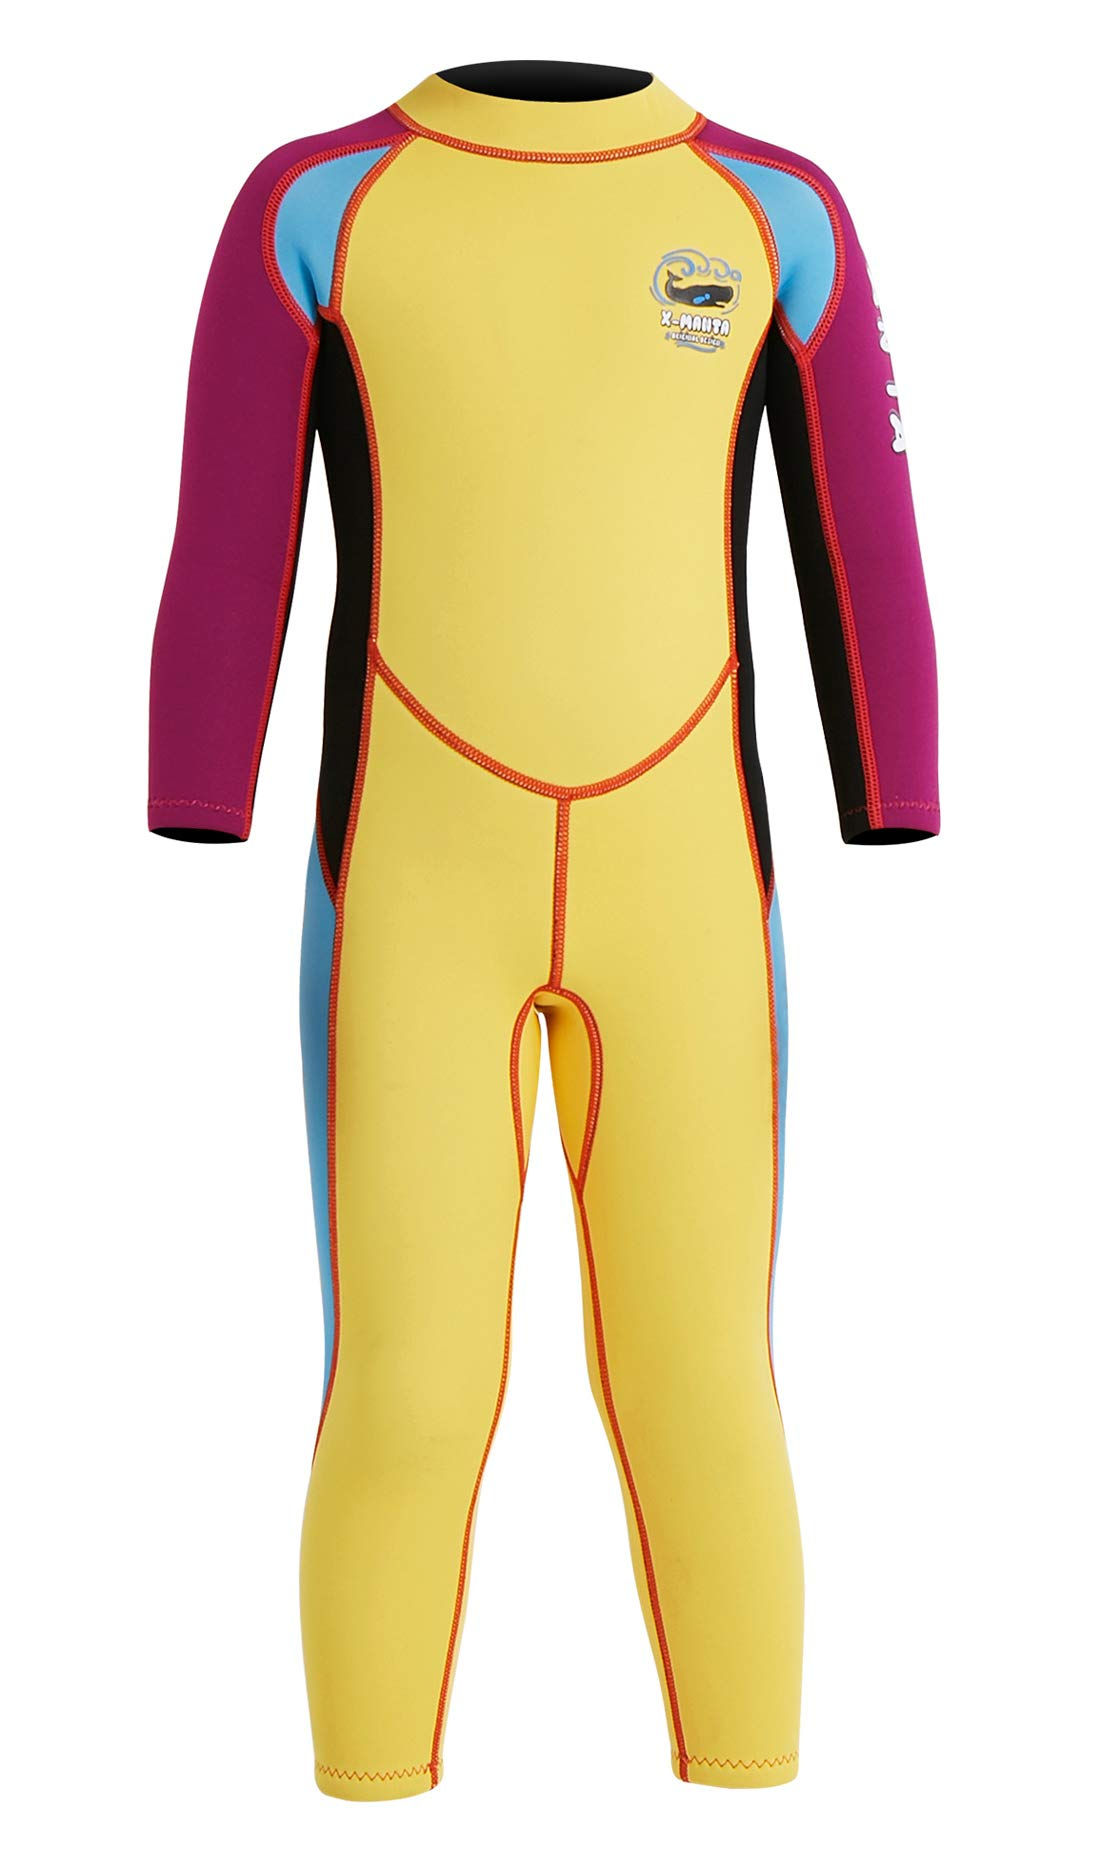 a8bcb7e19d DIVE & SAIL Kids Long Sleeve Full Suit Wetsuit Thermal Warm One Piece  Swimsuit Surfing Diving Suit Swimwear Yellow XL